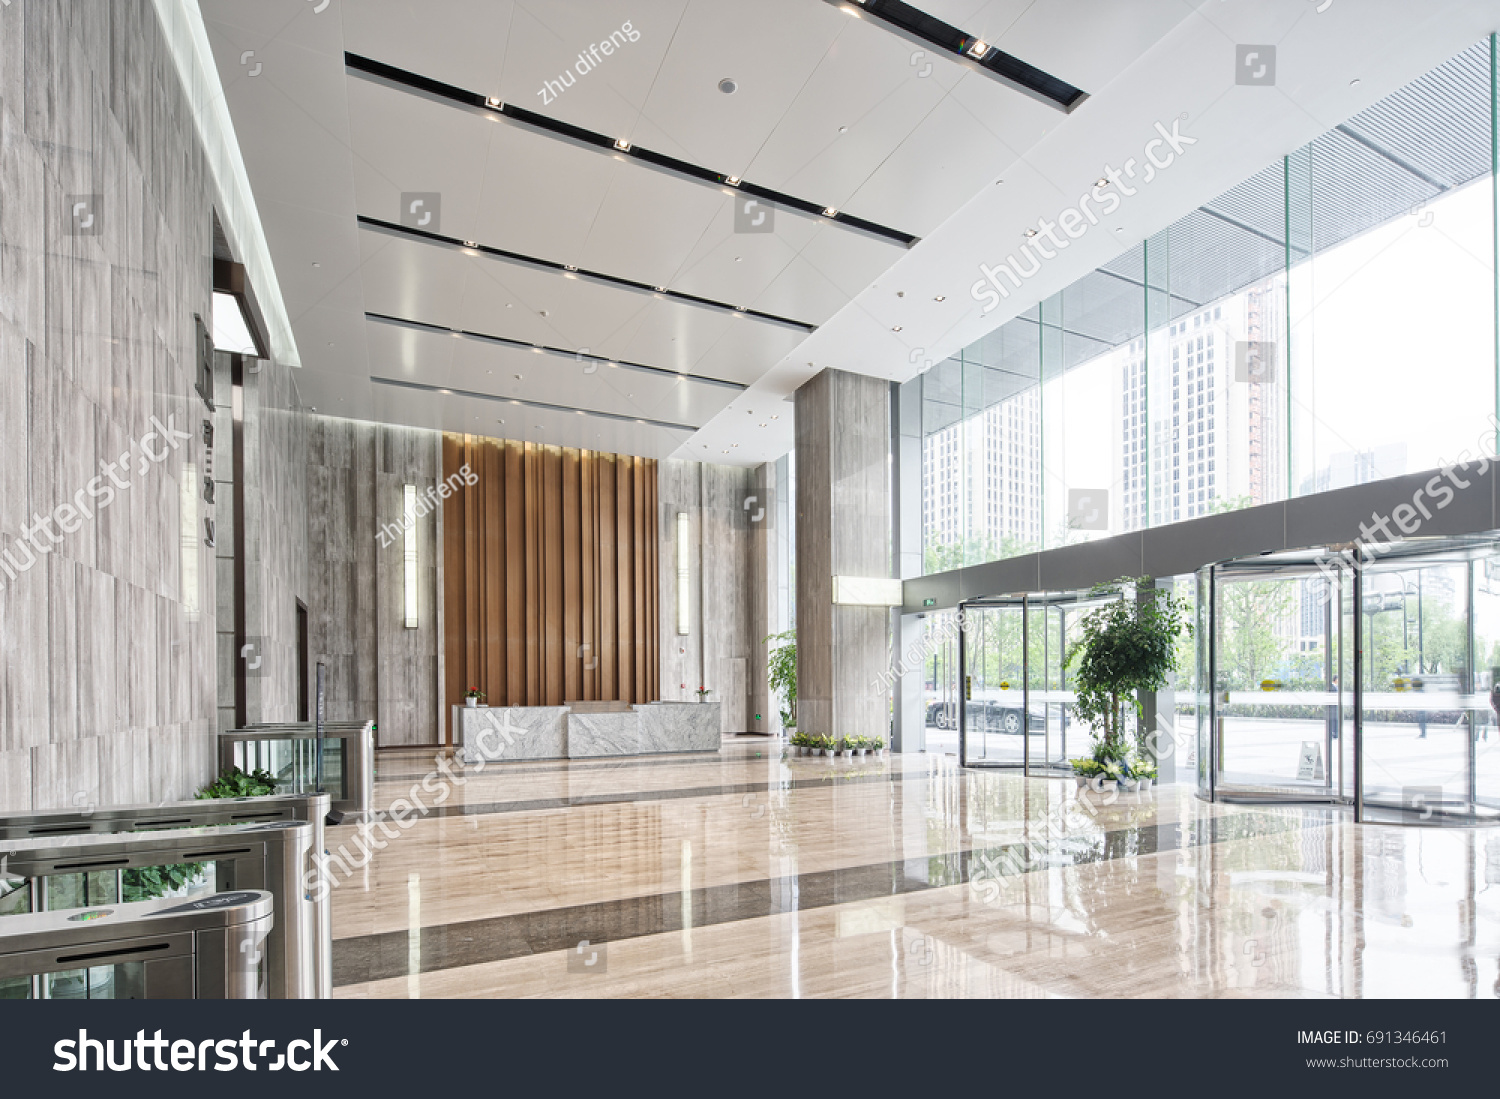 Wonderful Interior Of Modern Entrance Hall In Modern Office Building